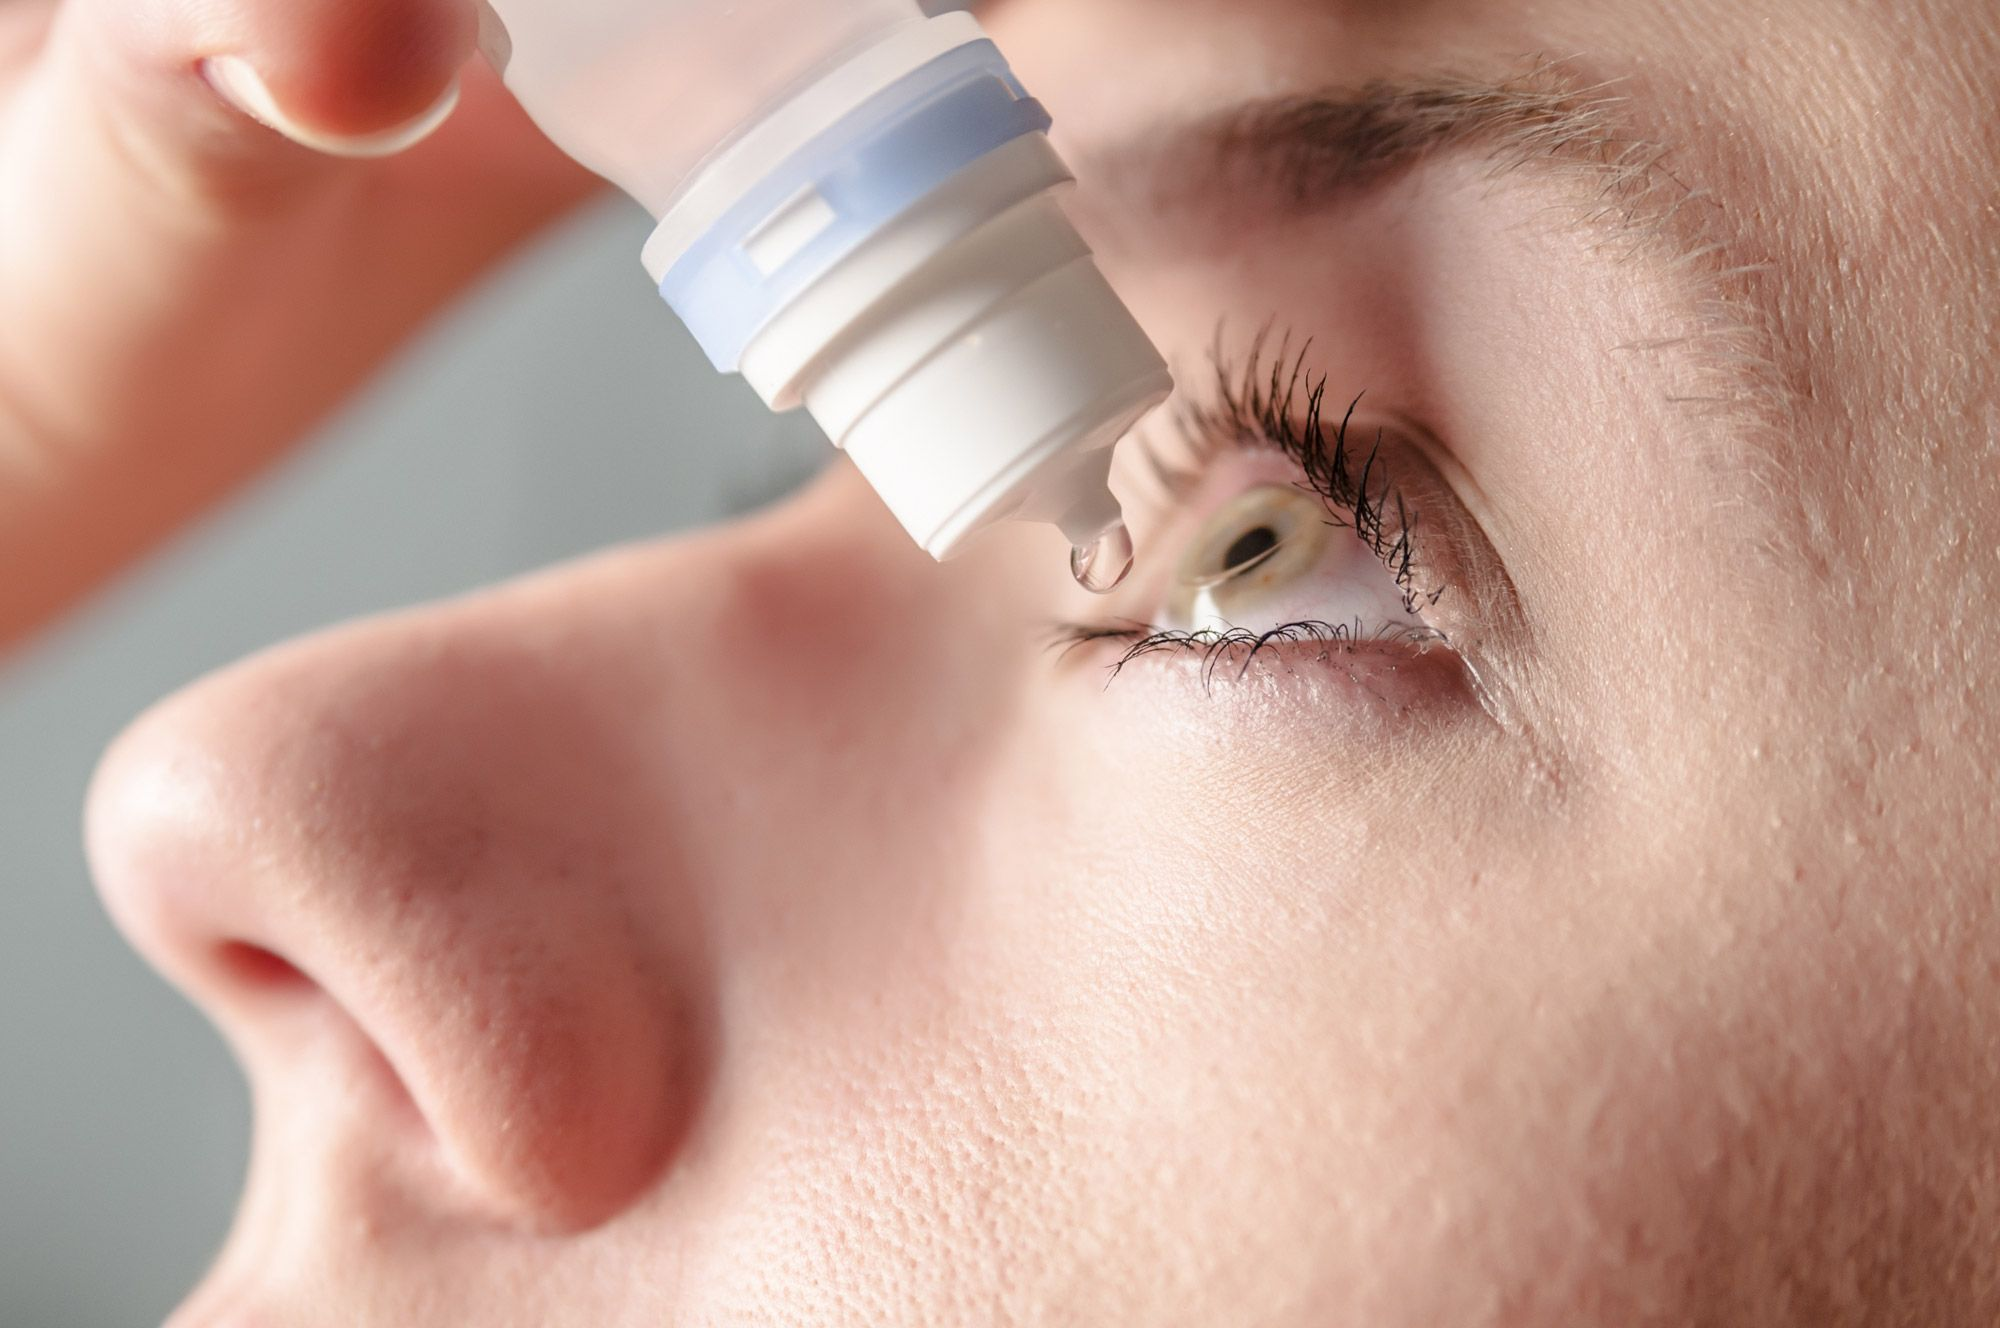 A patient applying eye drops after LASIK